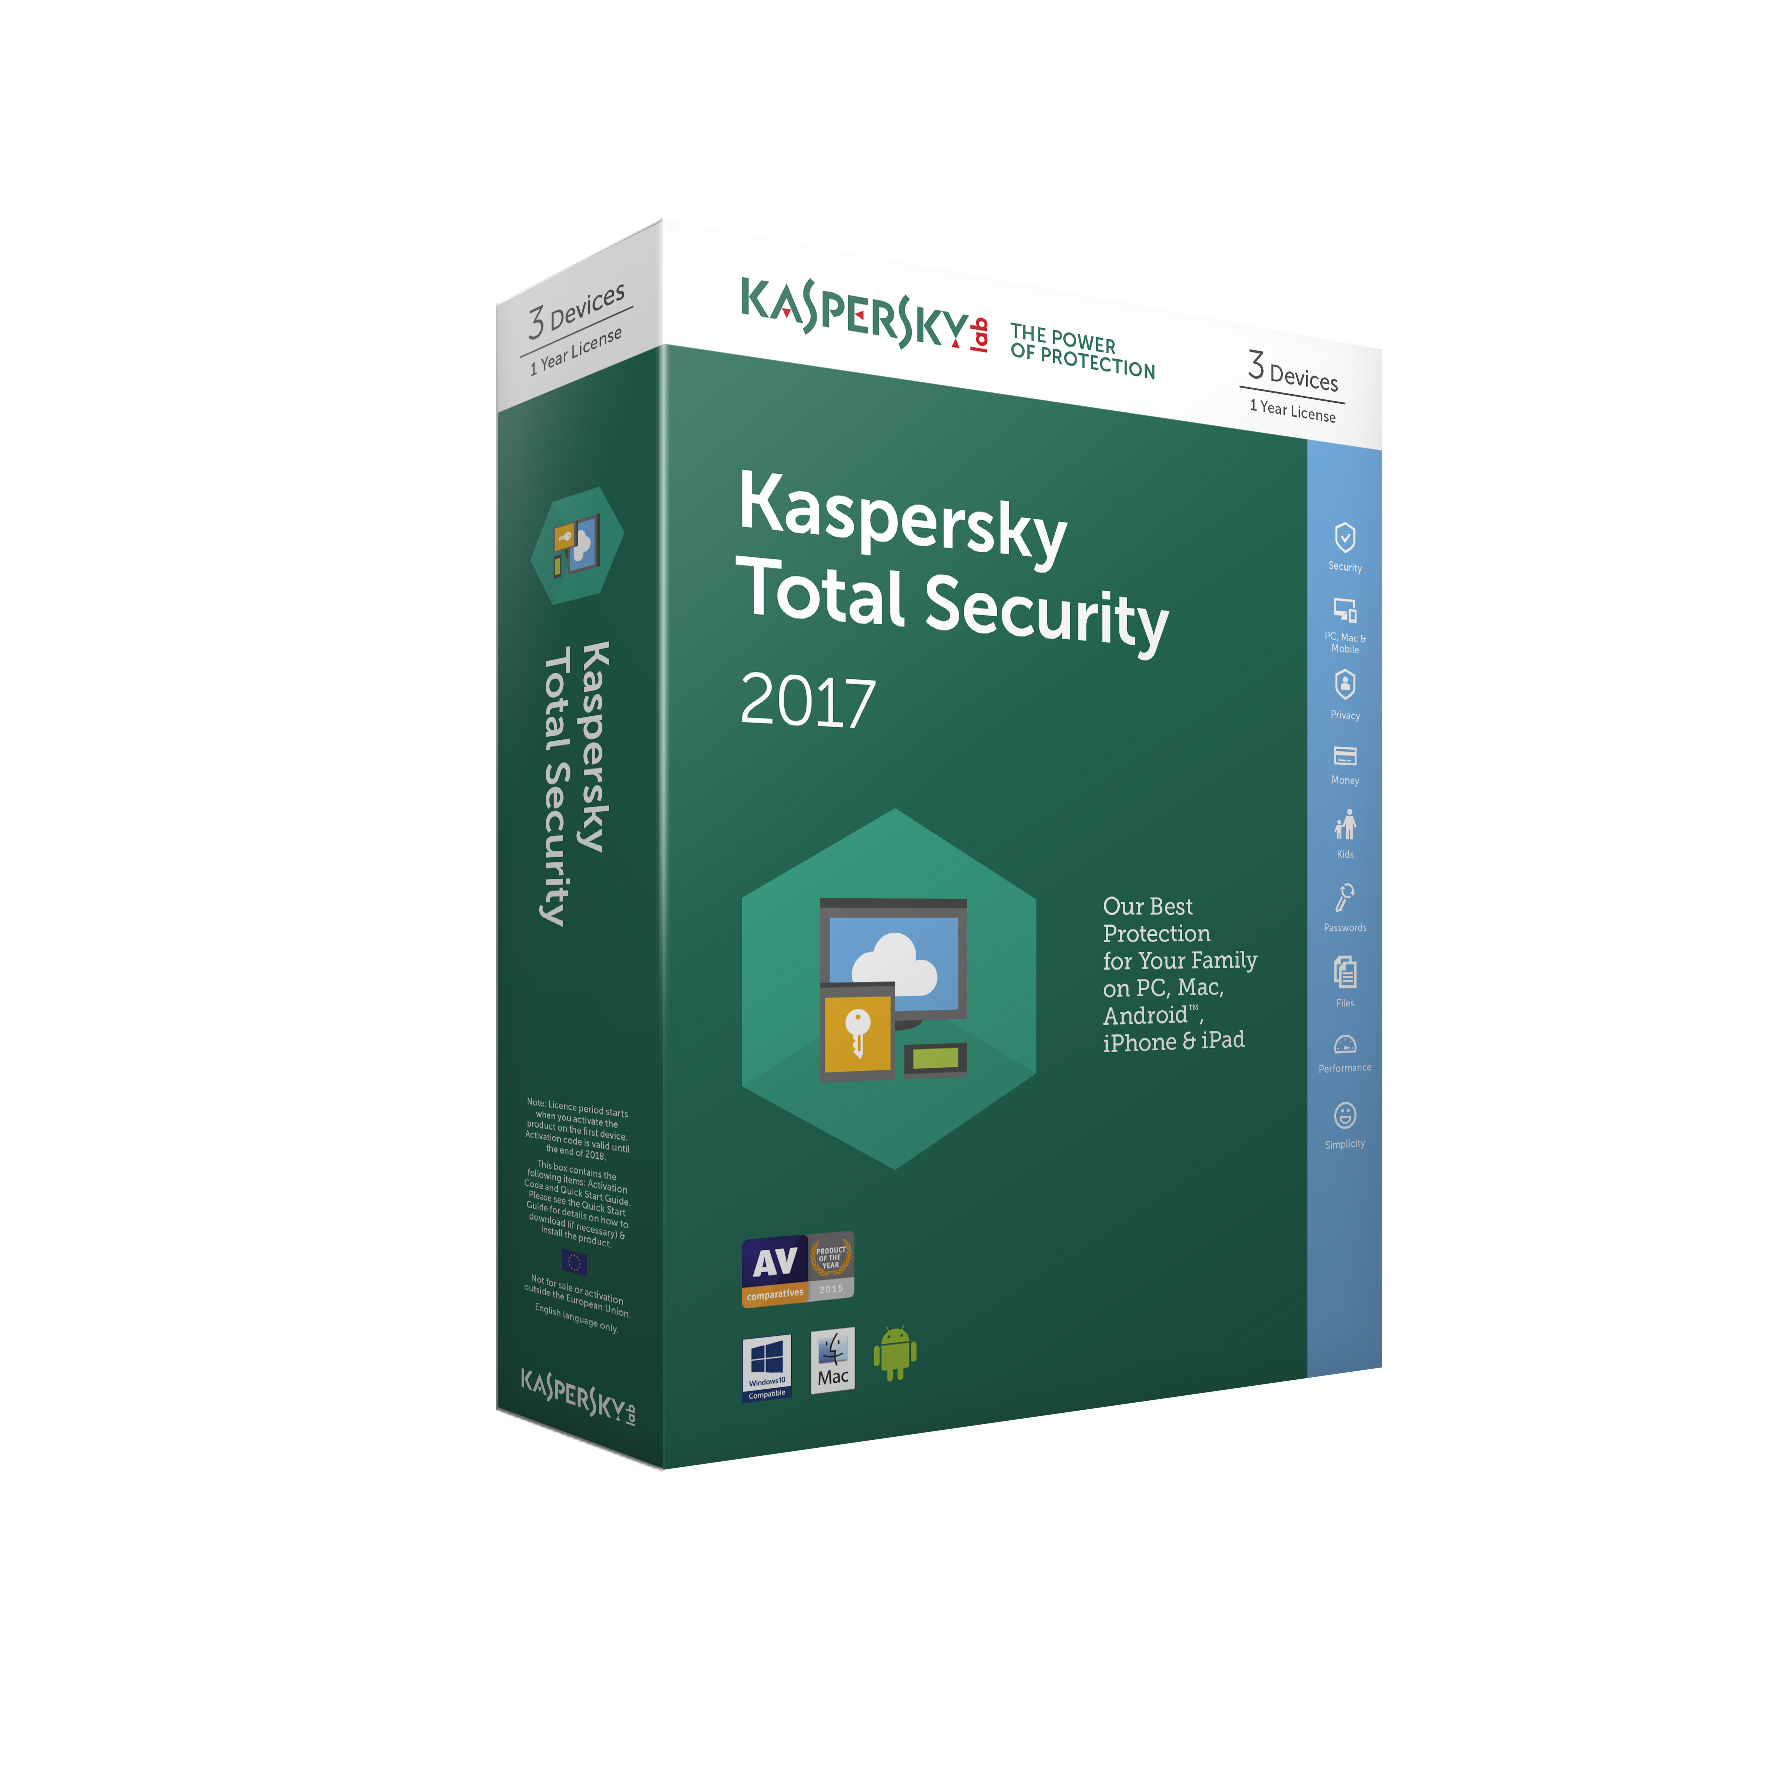 Kaspersky Lab Kaspersky Total Security 2017 - 3 Devices 1 Year (Standard Packaging)